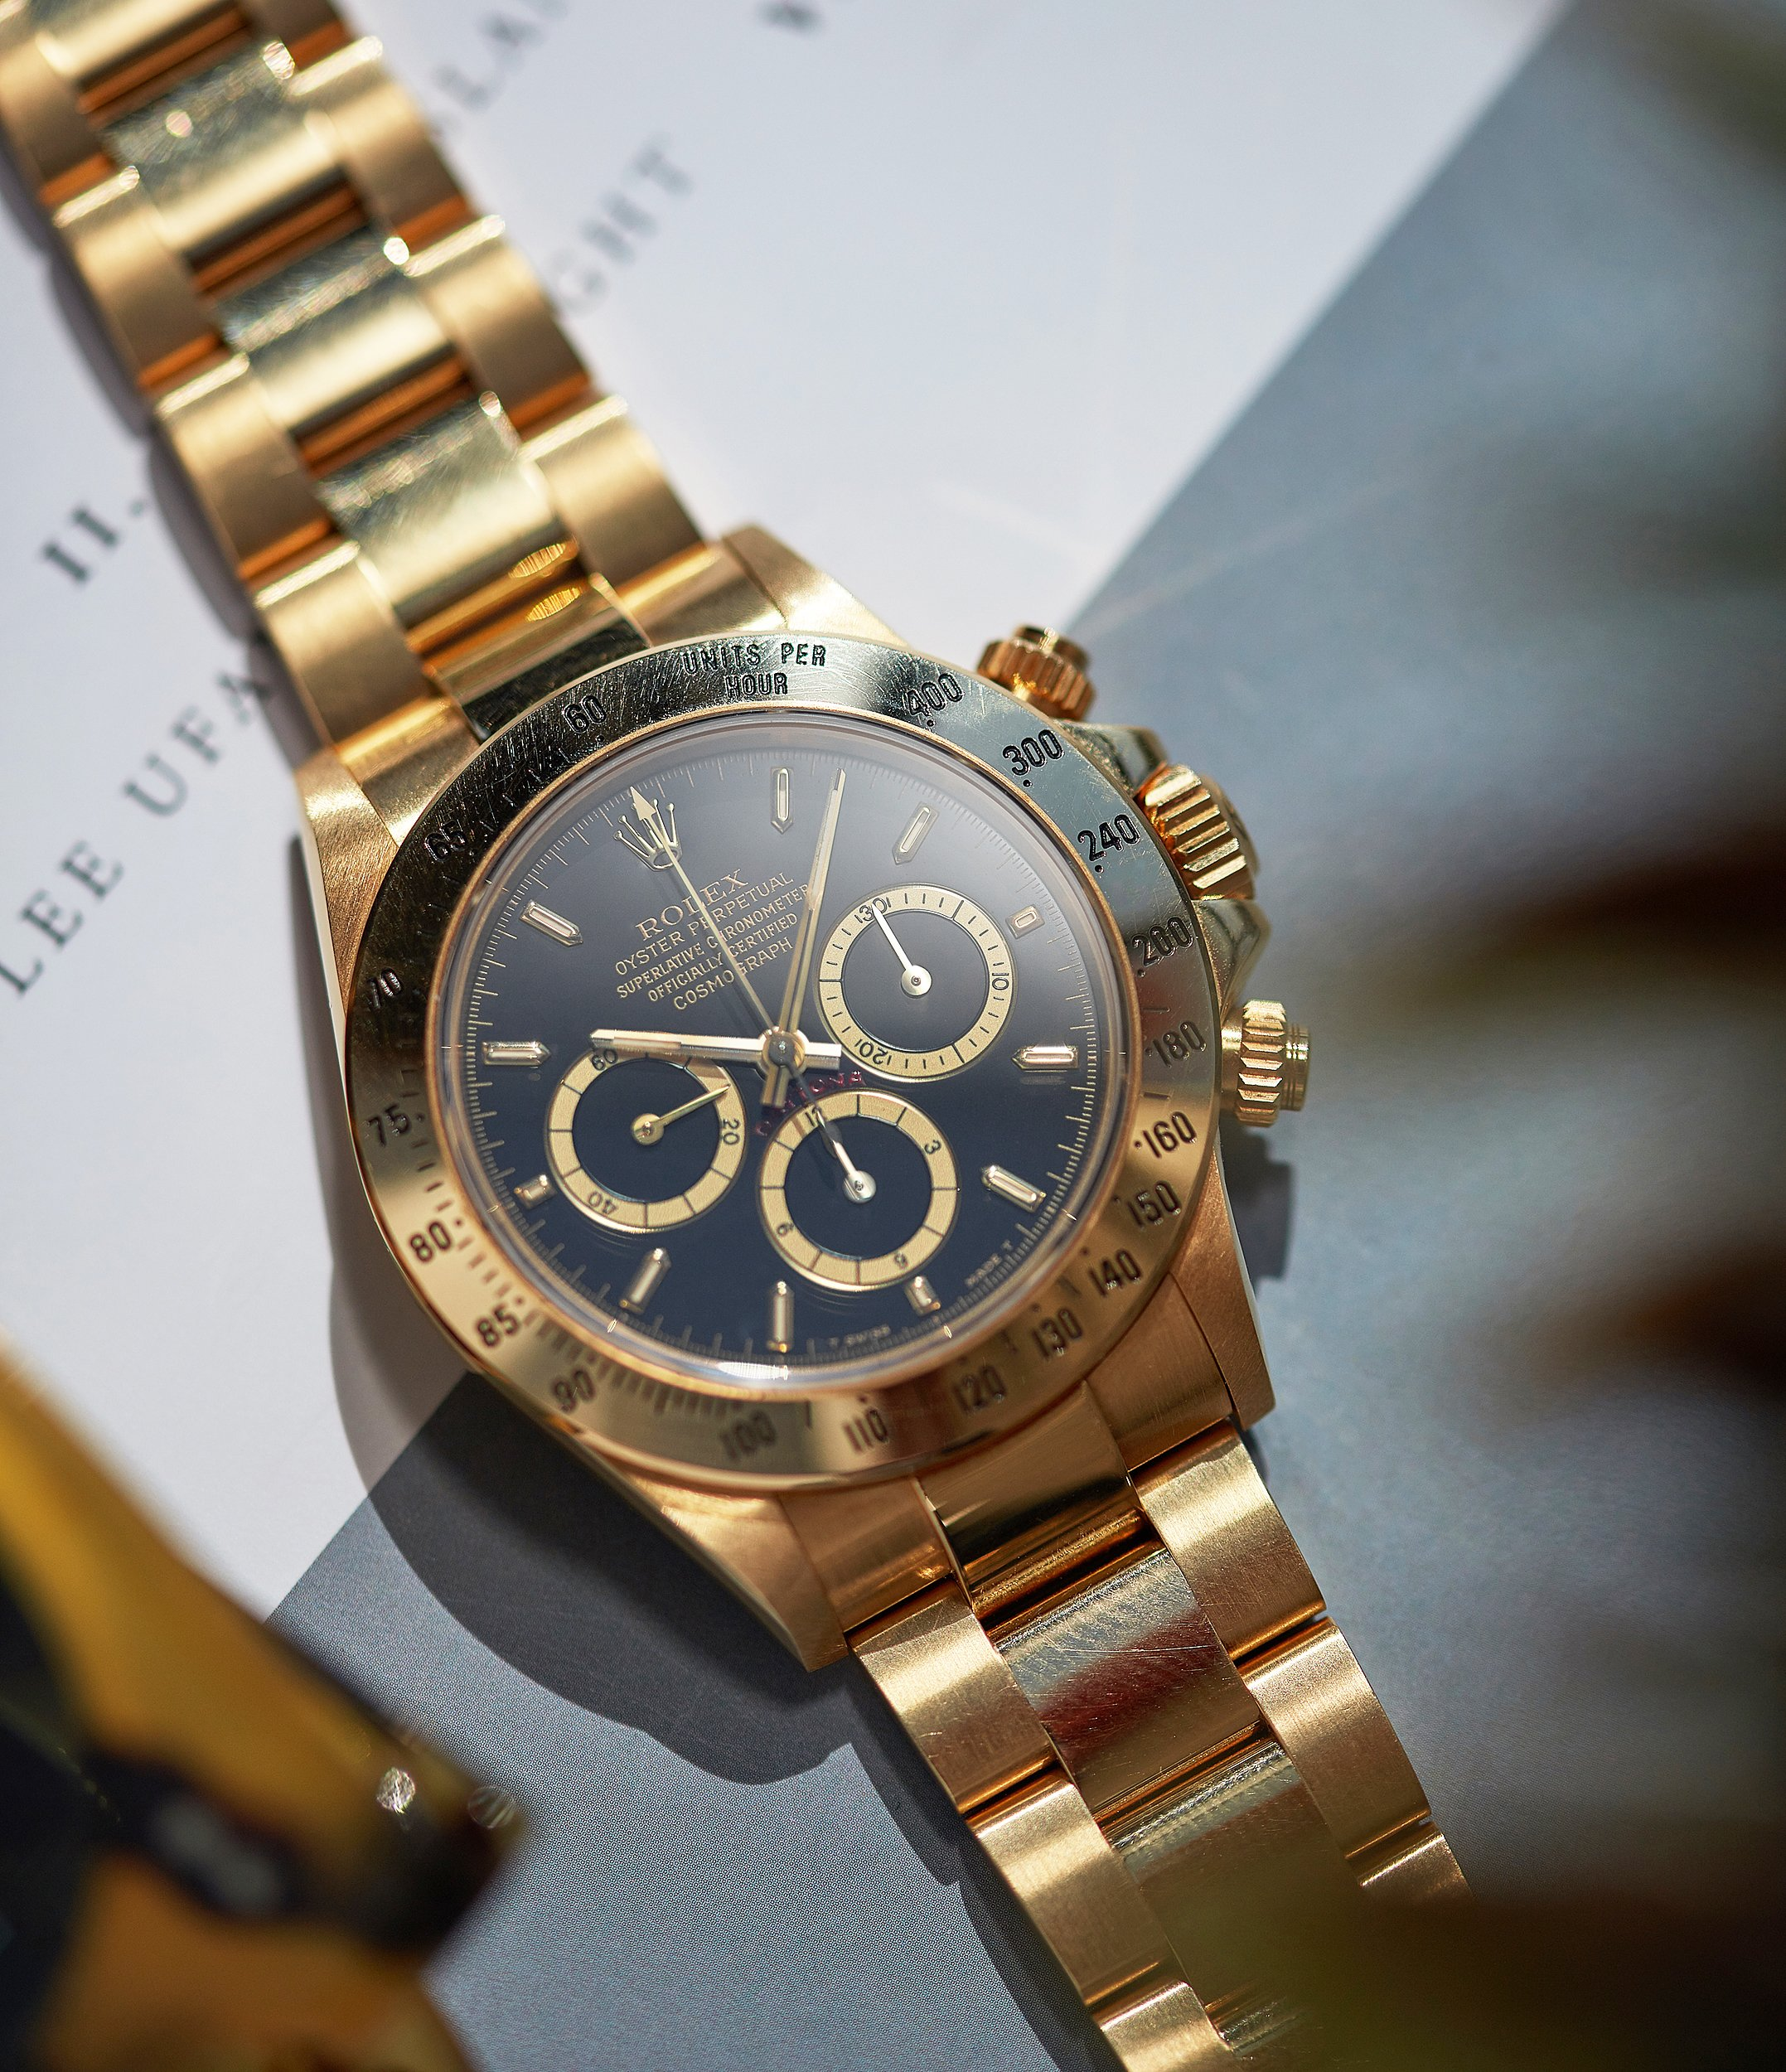 5 things you never knew about the Rolex Daytona